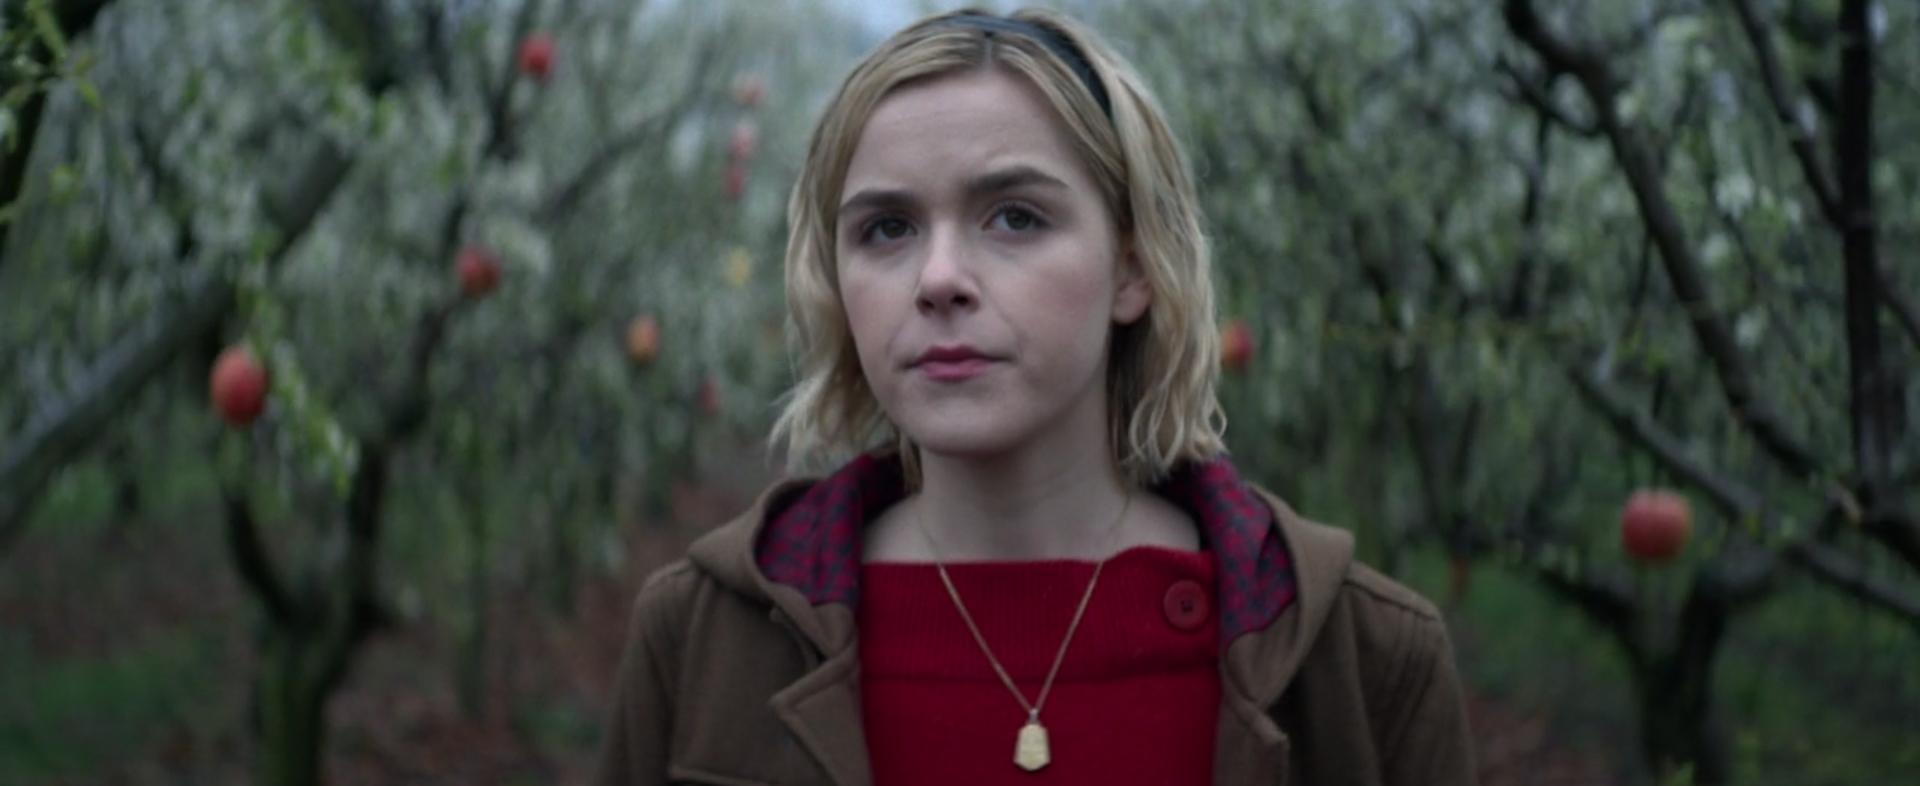 Chilling Adventures of Sabrina. image Credit: Netflix